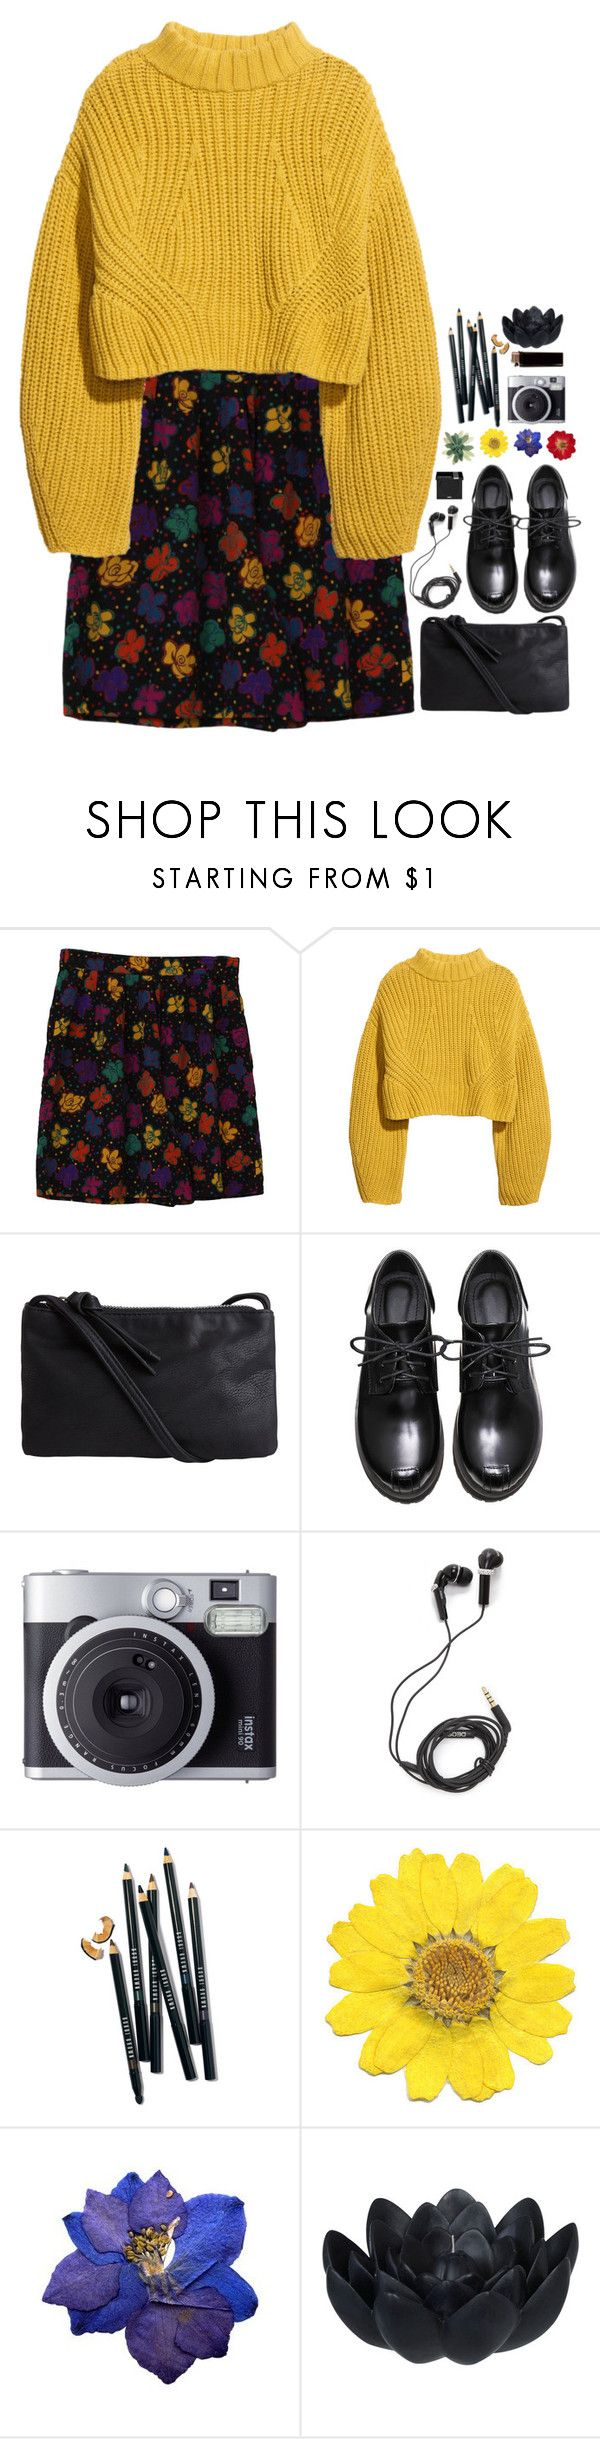 """""""she said my spirit doesn't move like it did before"""" by tanja-bp on Polyvore featuring Worthington, H&M, Pieces, Fujifilm, DEOS, Bobbi Brown Cosmetics, Grace, Sia and MAKE UP FOR EVER"""